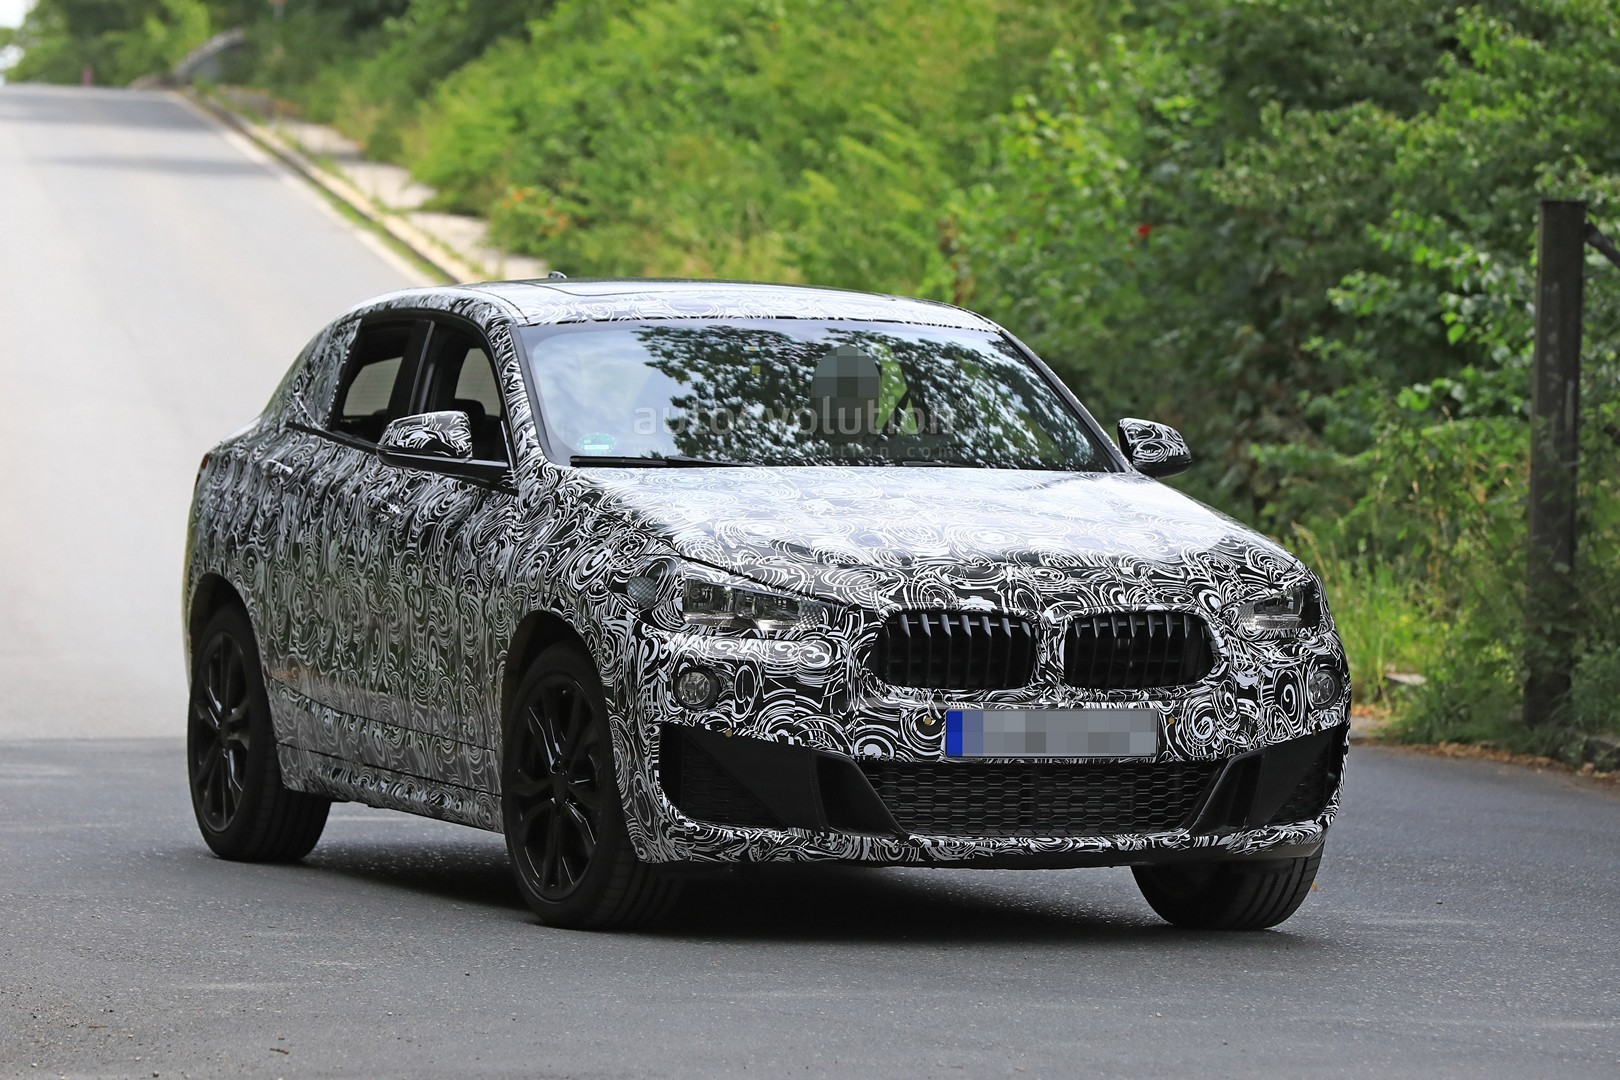 Spyshots: 2018 BMW X2 Interior And Front End Design Get Shown